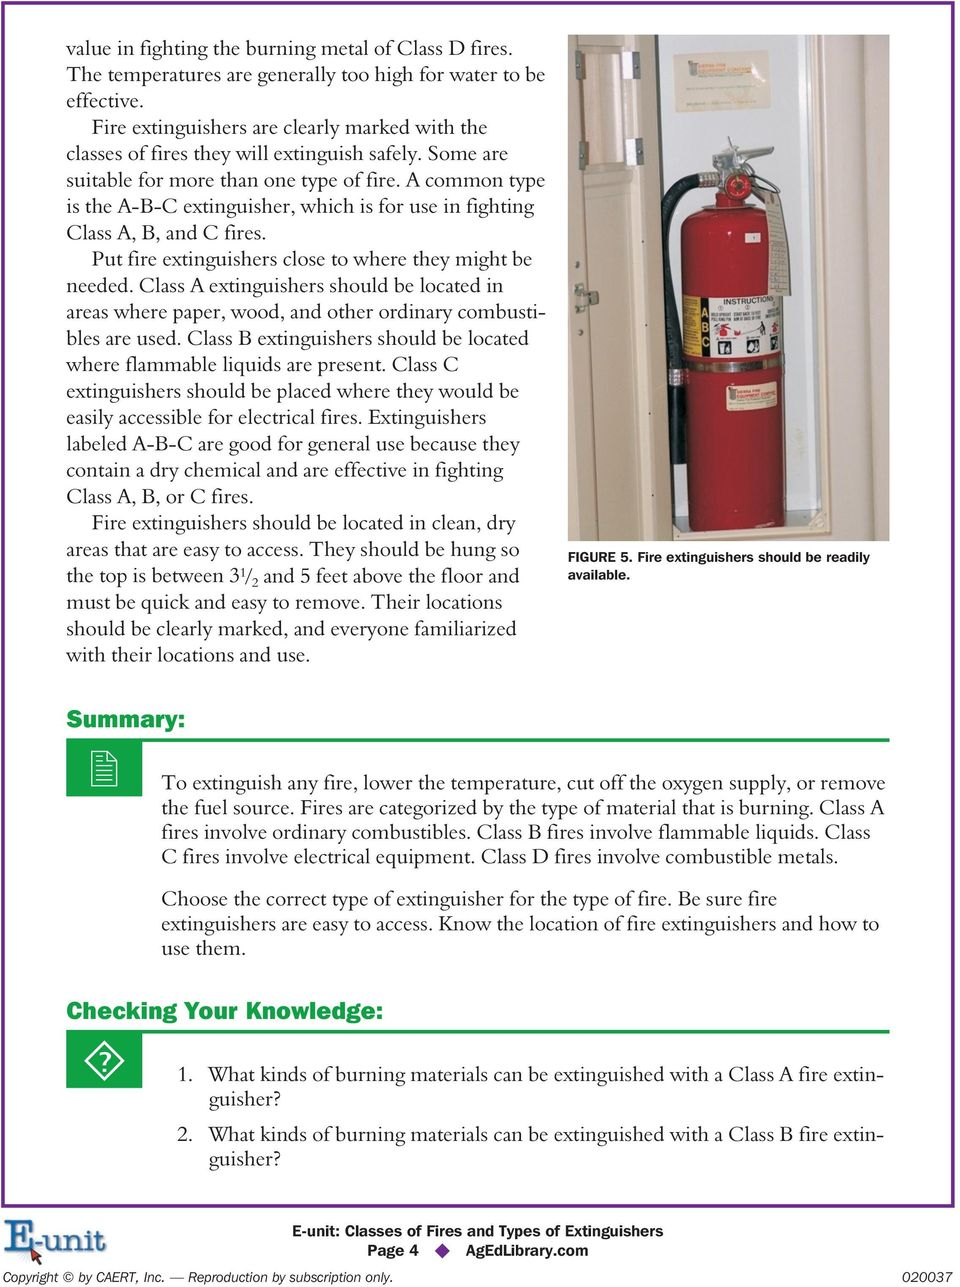 A common type is the A-B-C extinguisher, which is for use in fighting Class A, B, and C fires. Put fire extinguishers close to where they might be needed.